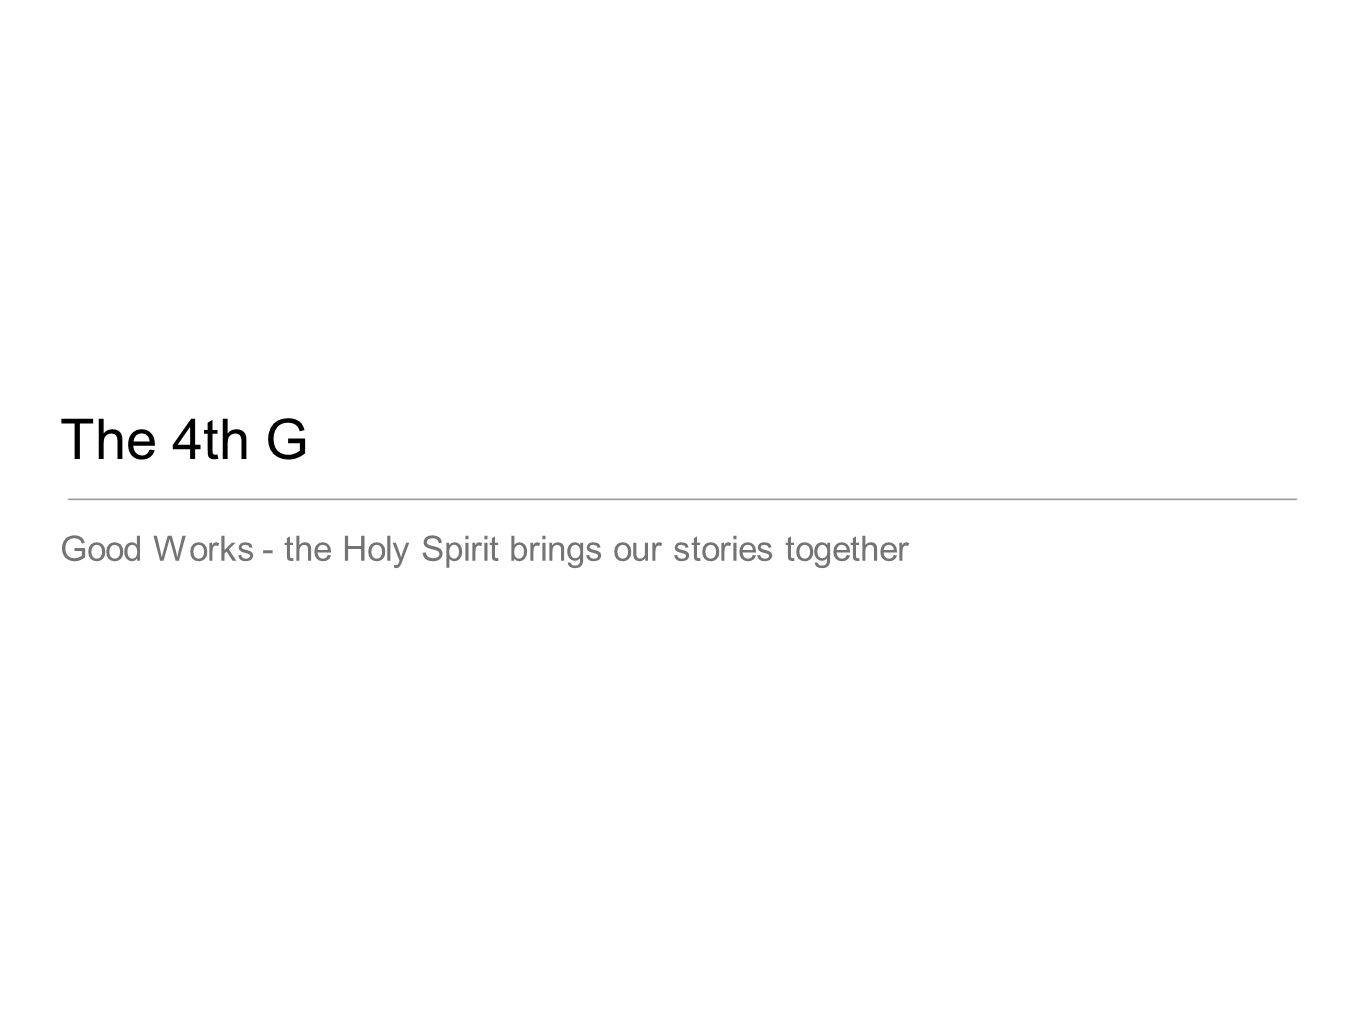 The 4th G Good Works - the Holy Spirit brings our stories together